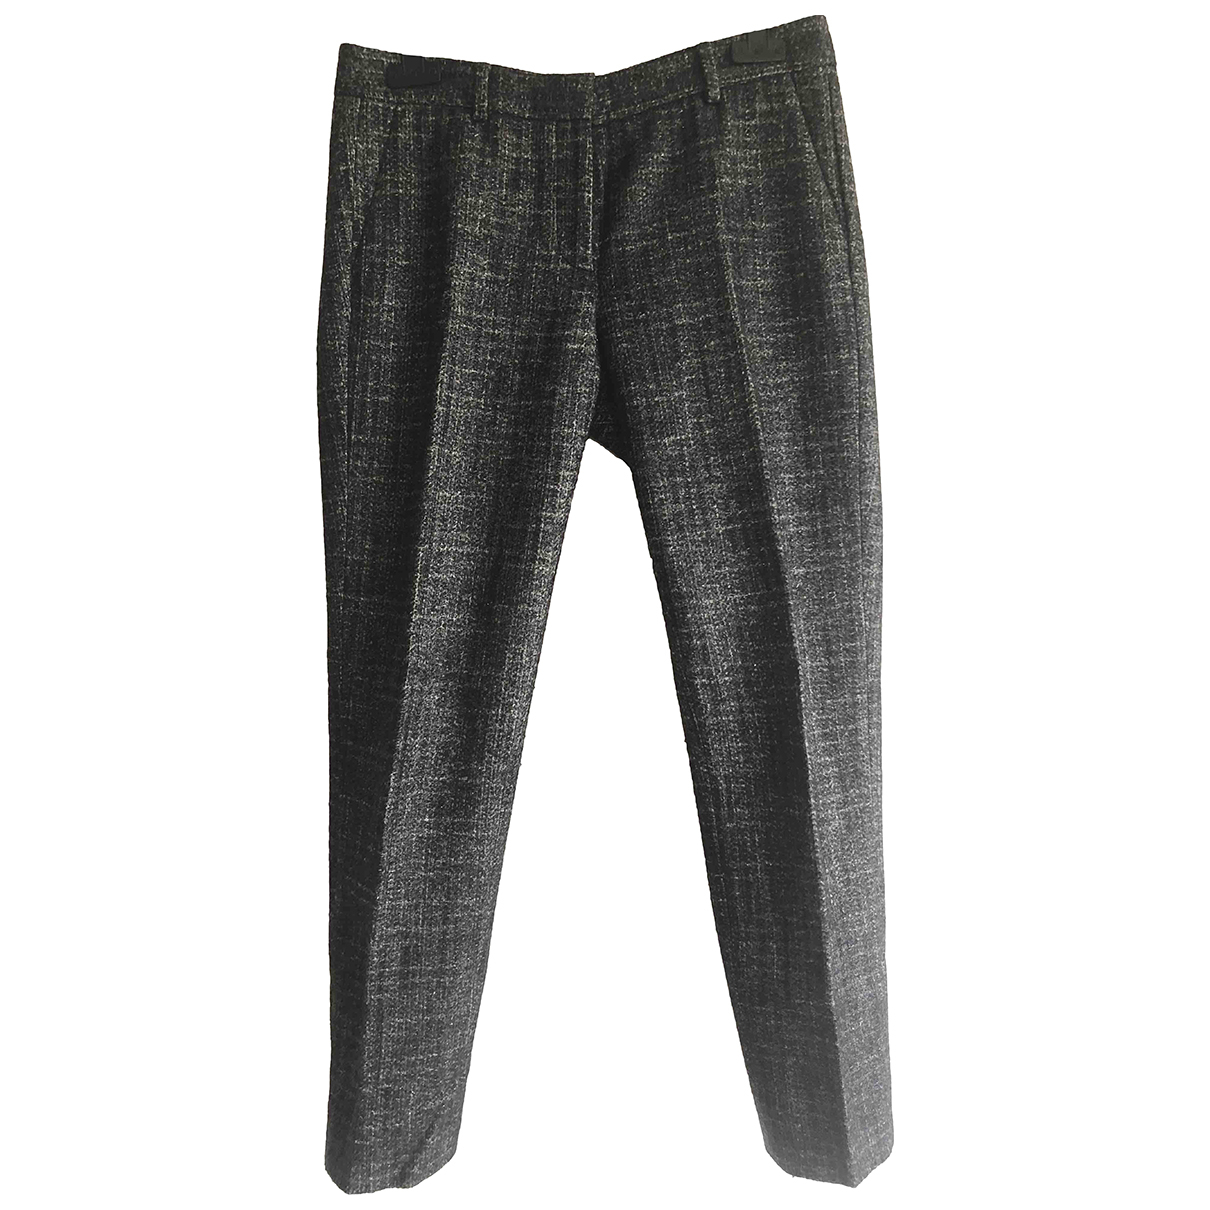 Mauro Grifoni N Grey Wool Trousers for Women 40 IT